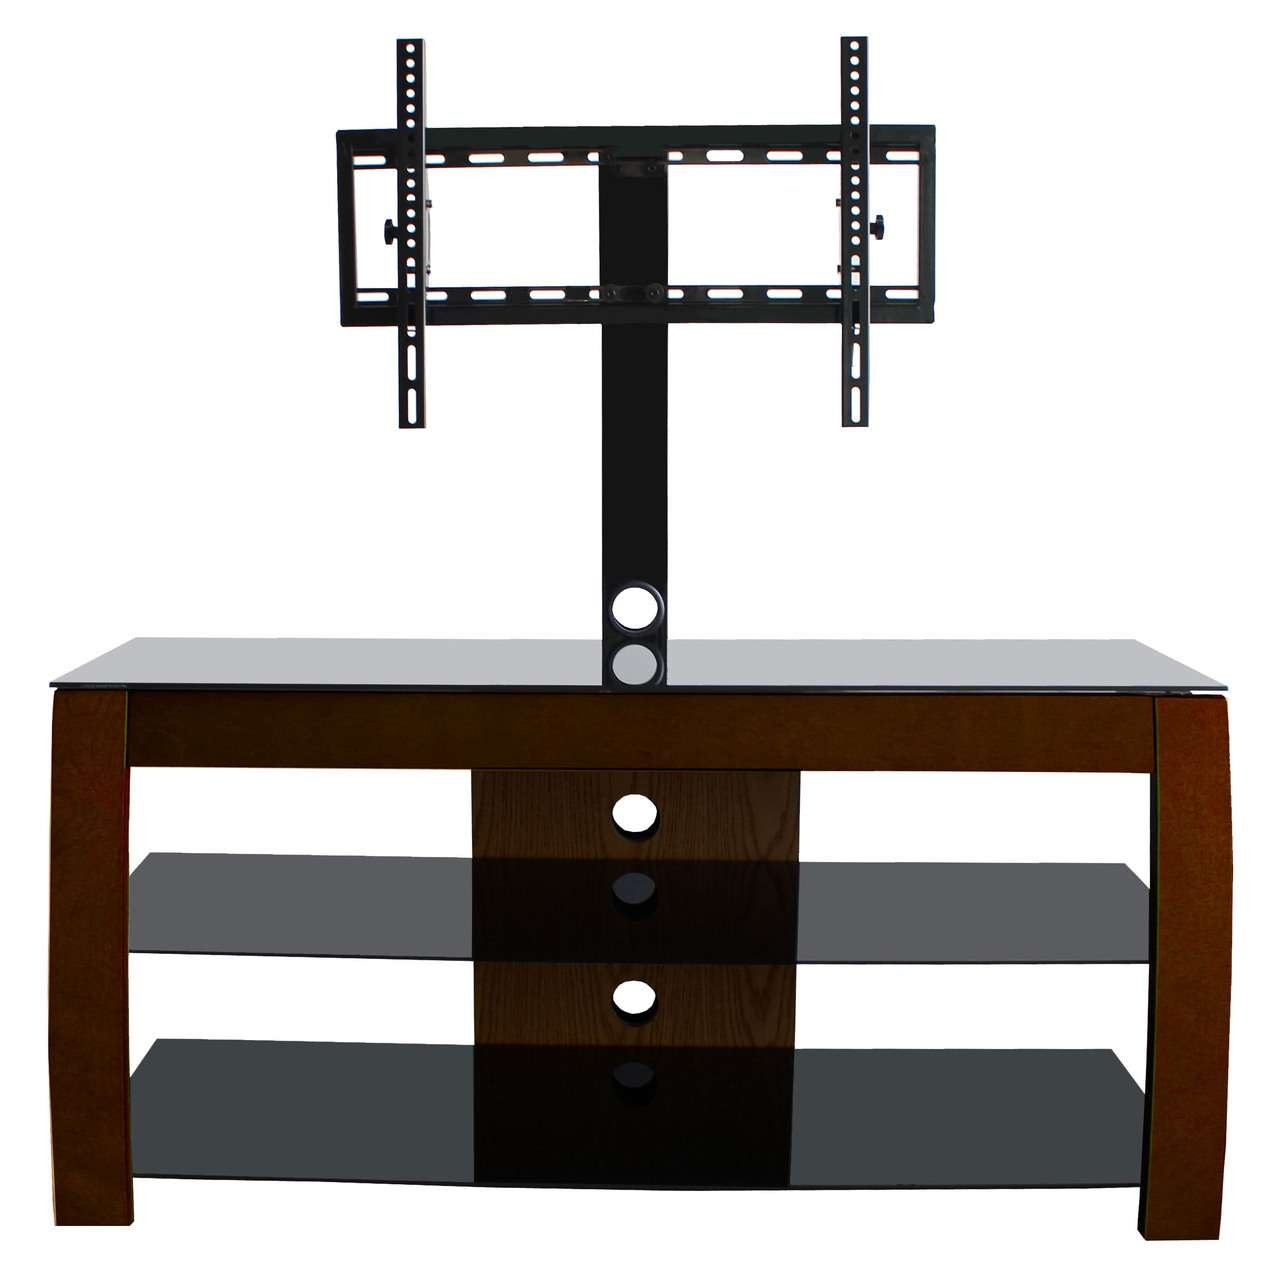 Rectangle Dark Brown Wooden Tv Stand With Black Glass Shelves And Inside Swivel Black Glass Tv Stands (View 5 of 15)